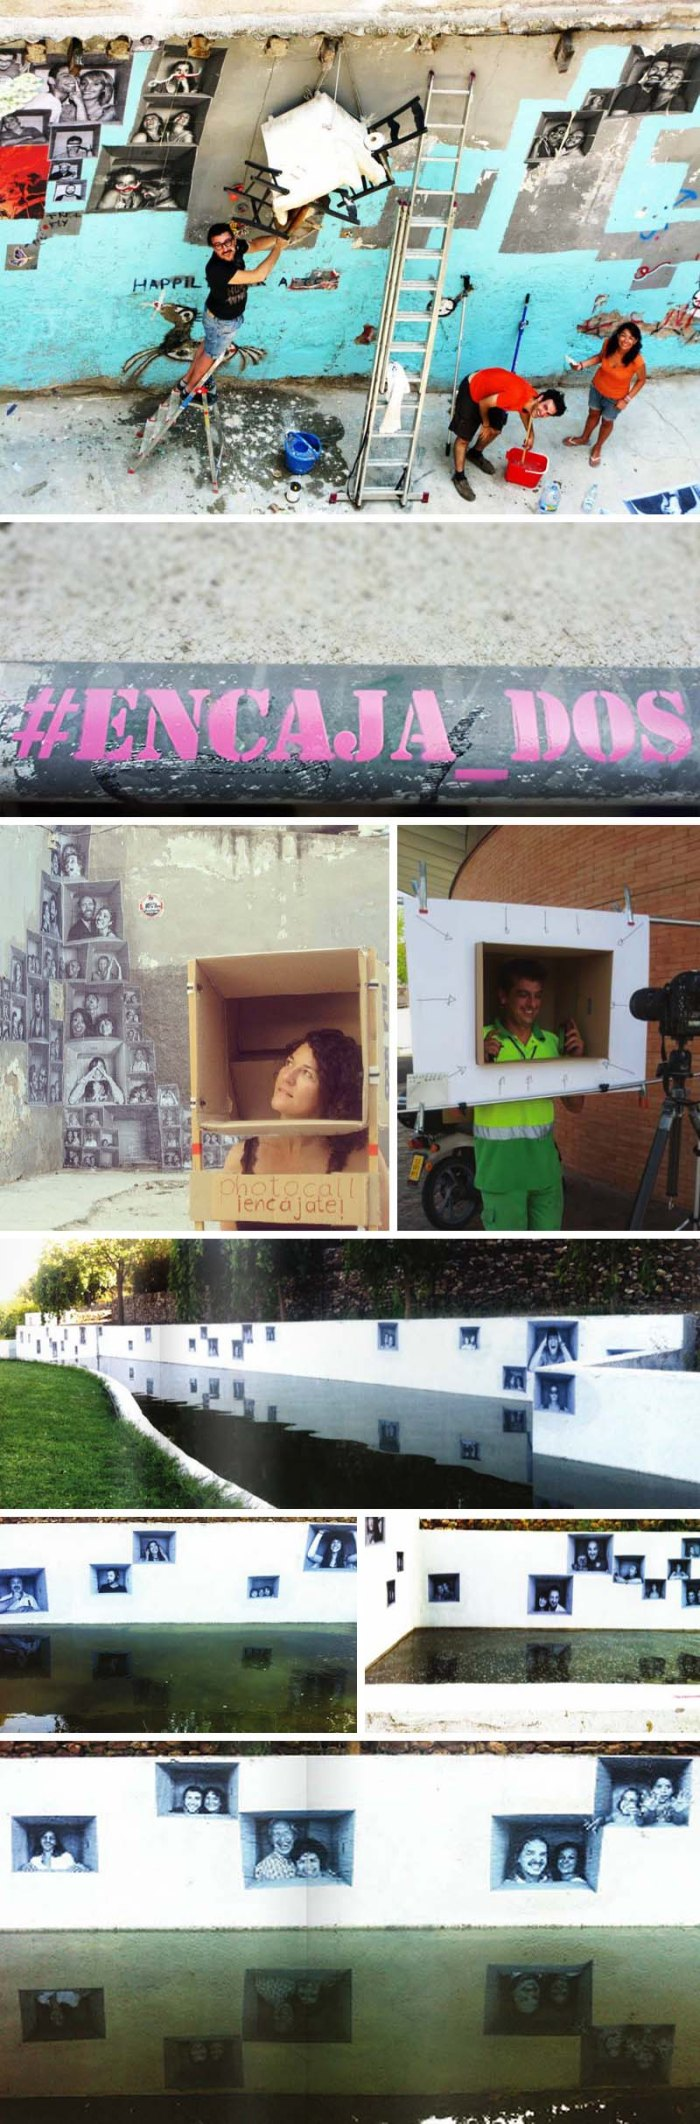 Lagaleriademagdalena, Spanish Street art, #Encaja_dos, photocall pop-ups in Barcelona and Rivas Vaciamadrid